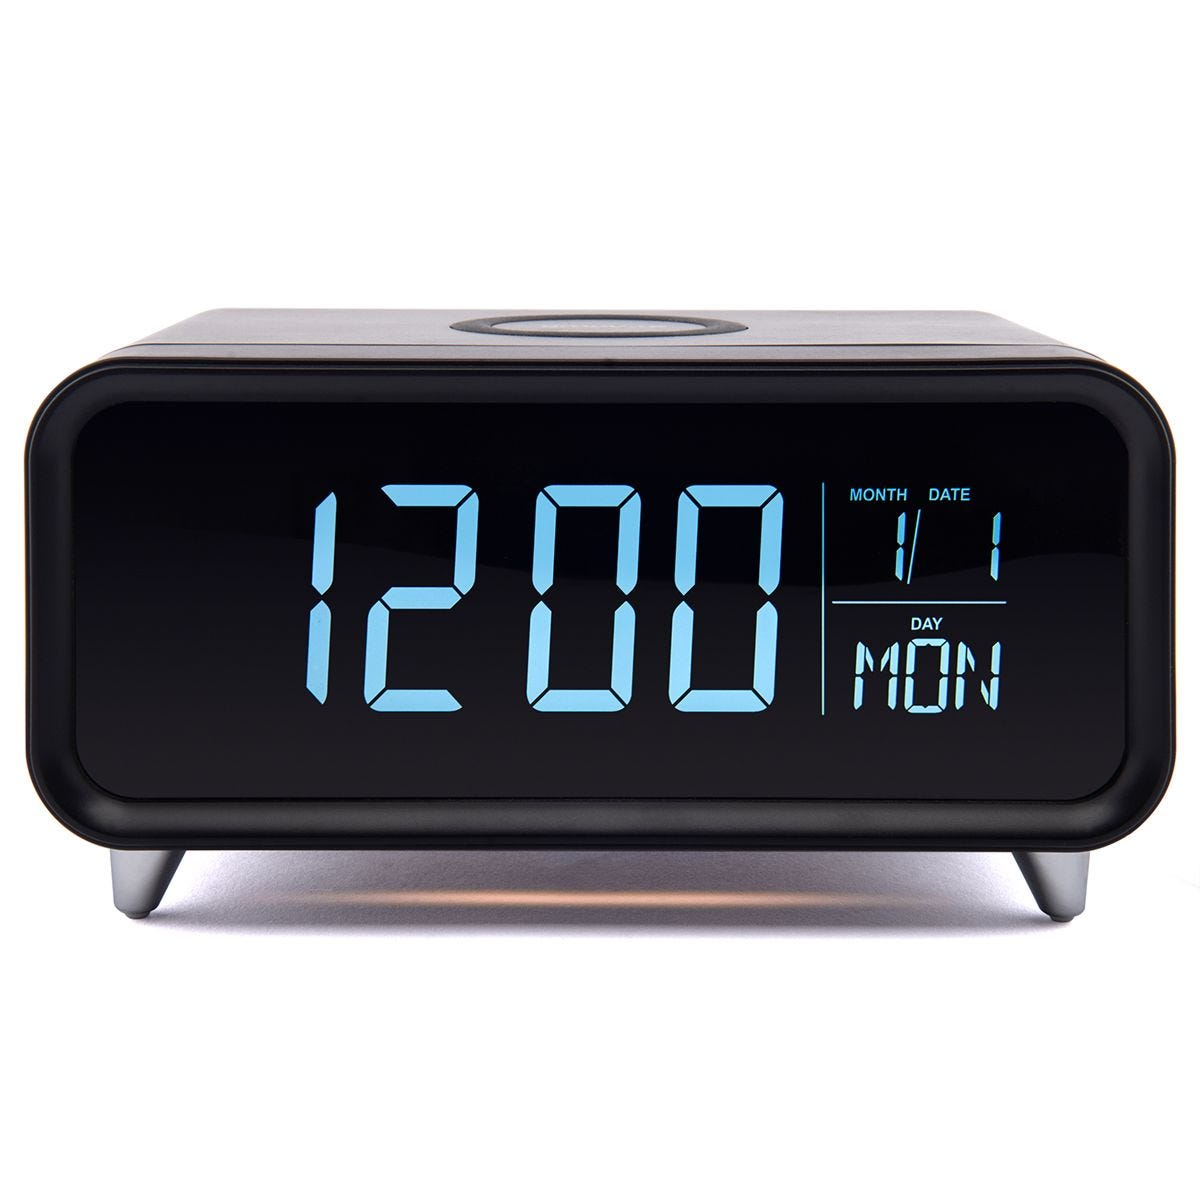 Groov-e Athena Alarm Clock & Wireless Charger - Black